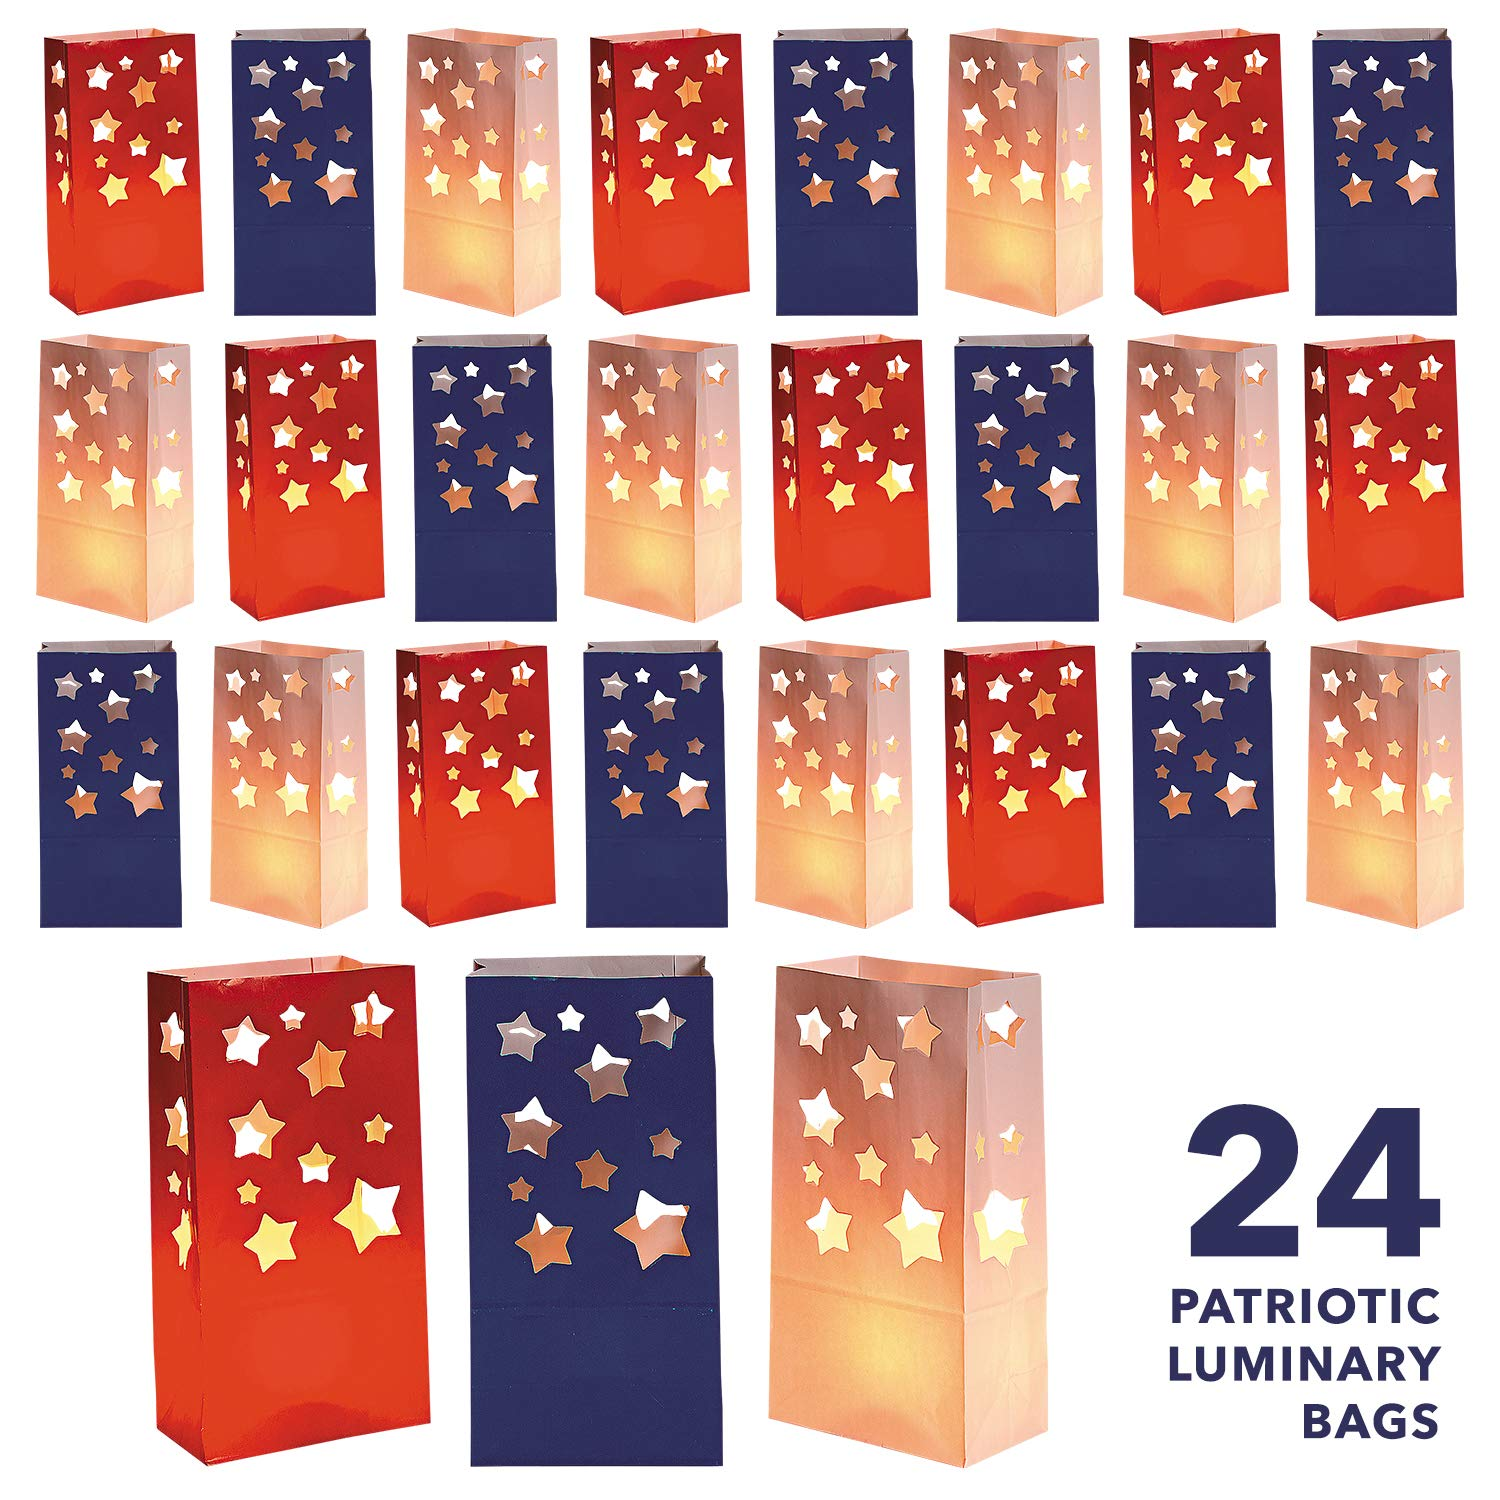 Christmas In July Party Supplies.Live It Up Party Supplies Patriotic Luminary Bags For 4th Of July Decorations Military Welcome Home Parties And More 24 Pack